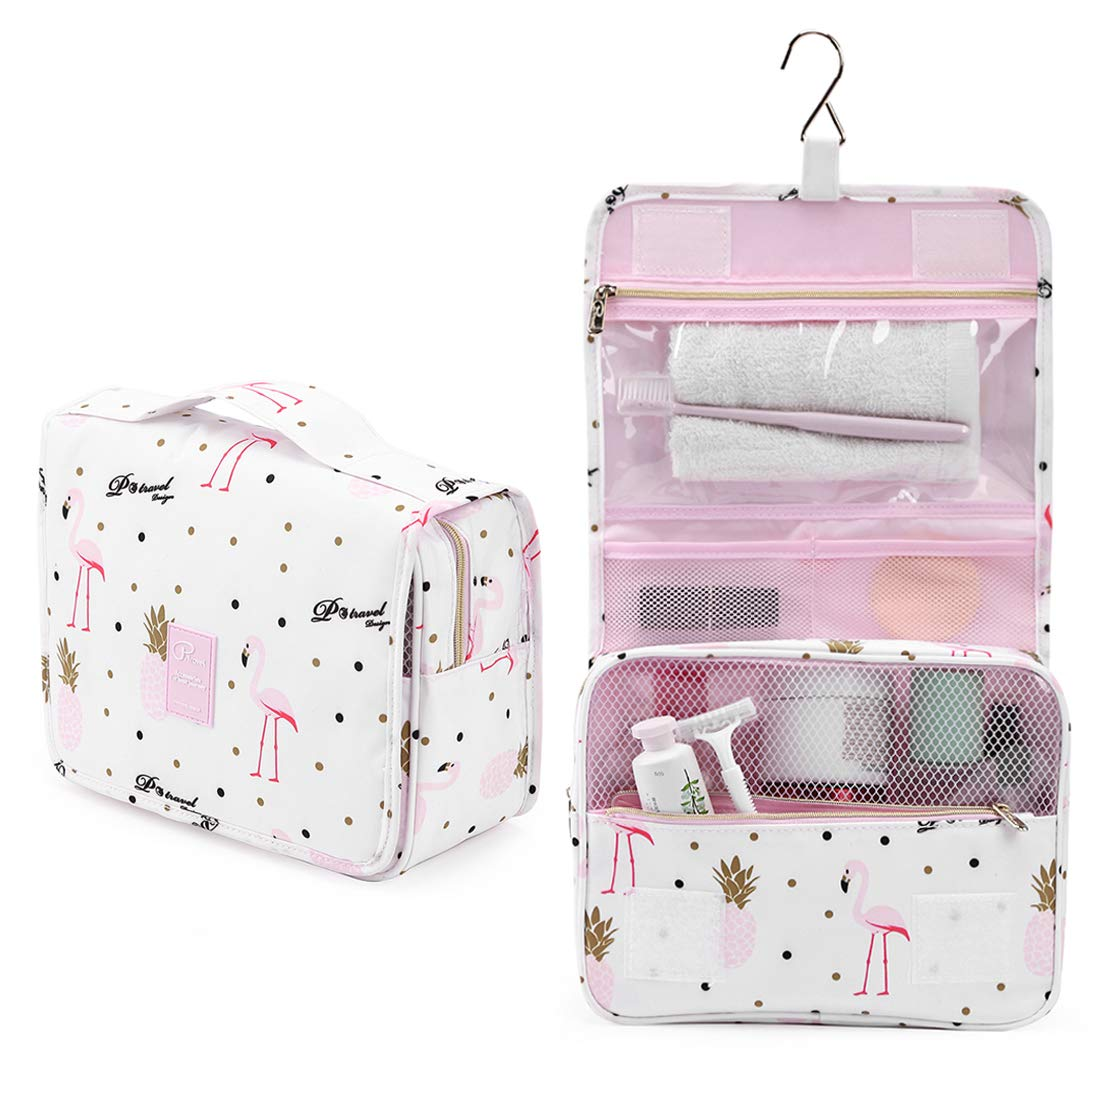 Houmass Hanging Travel Toiletry Bag Makeup Cosmetic Toiletries Organizers Compact Waterproof for Women Vacations white